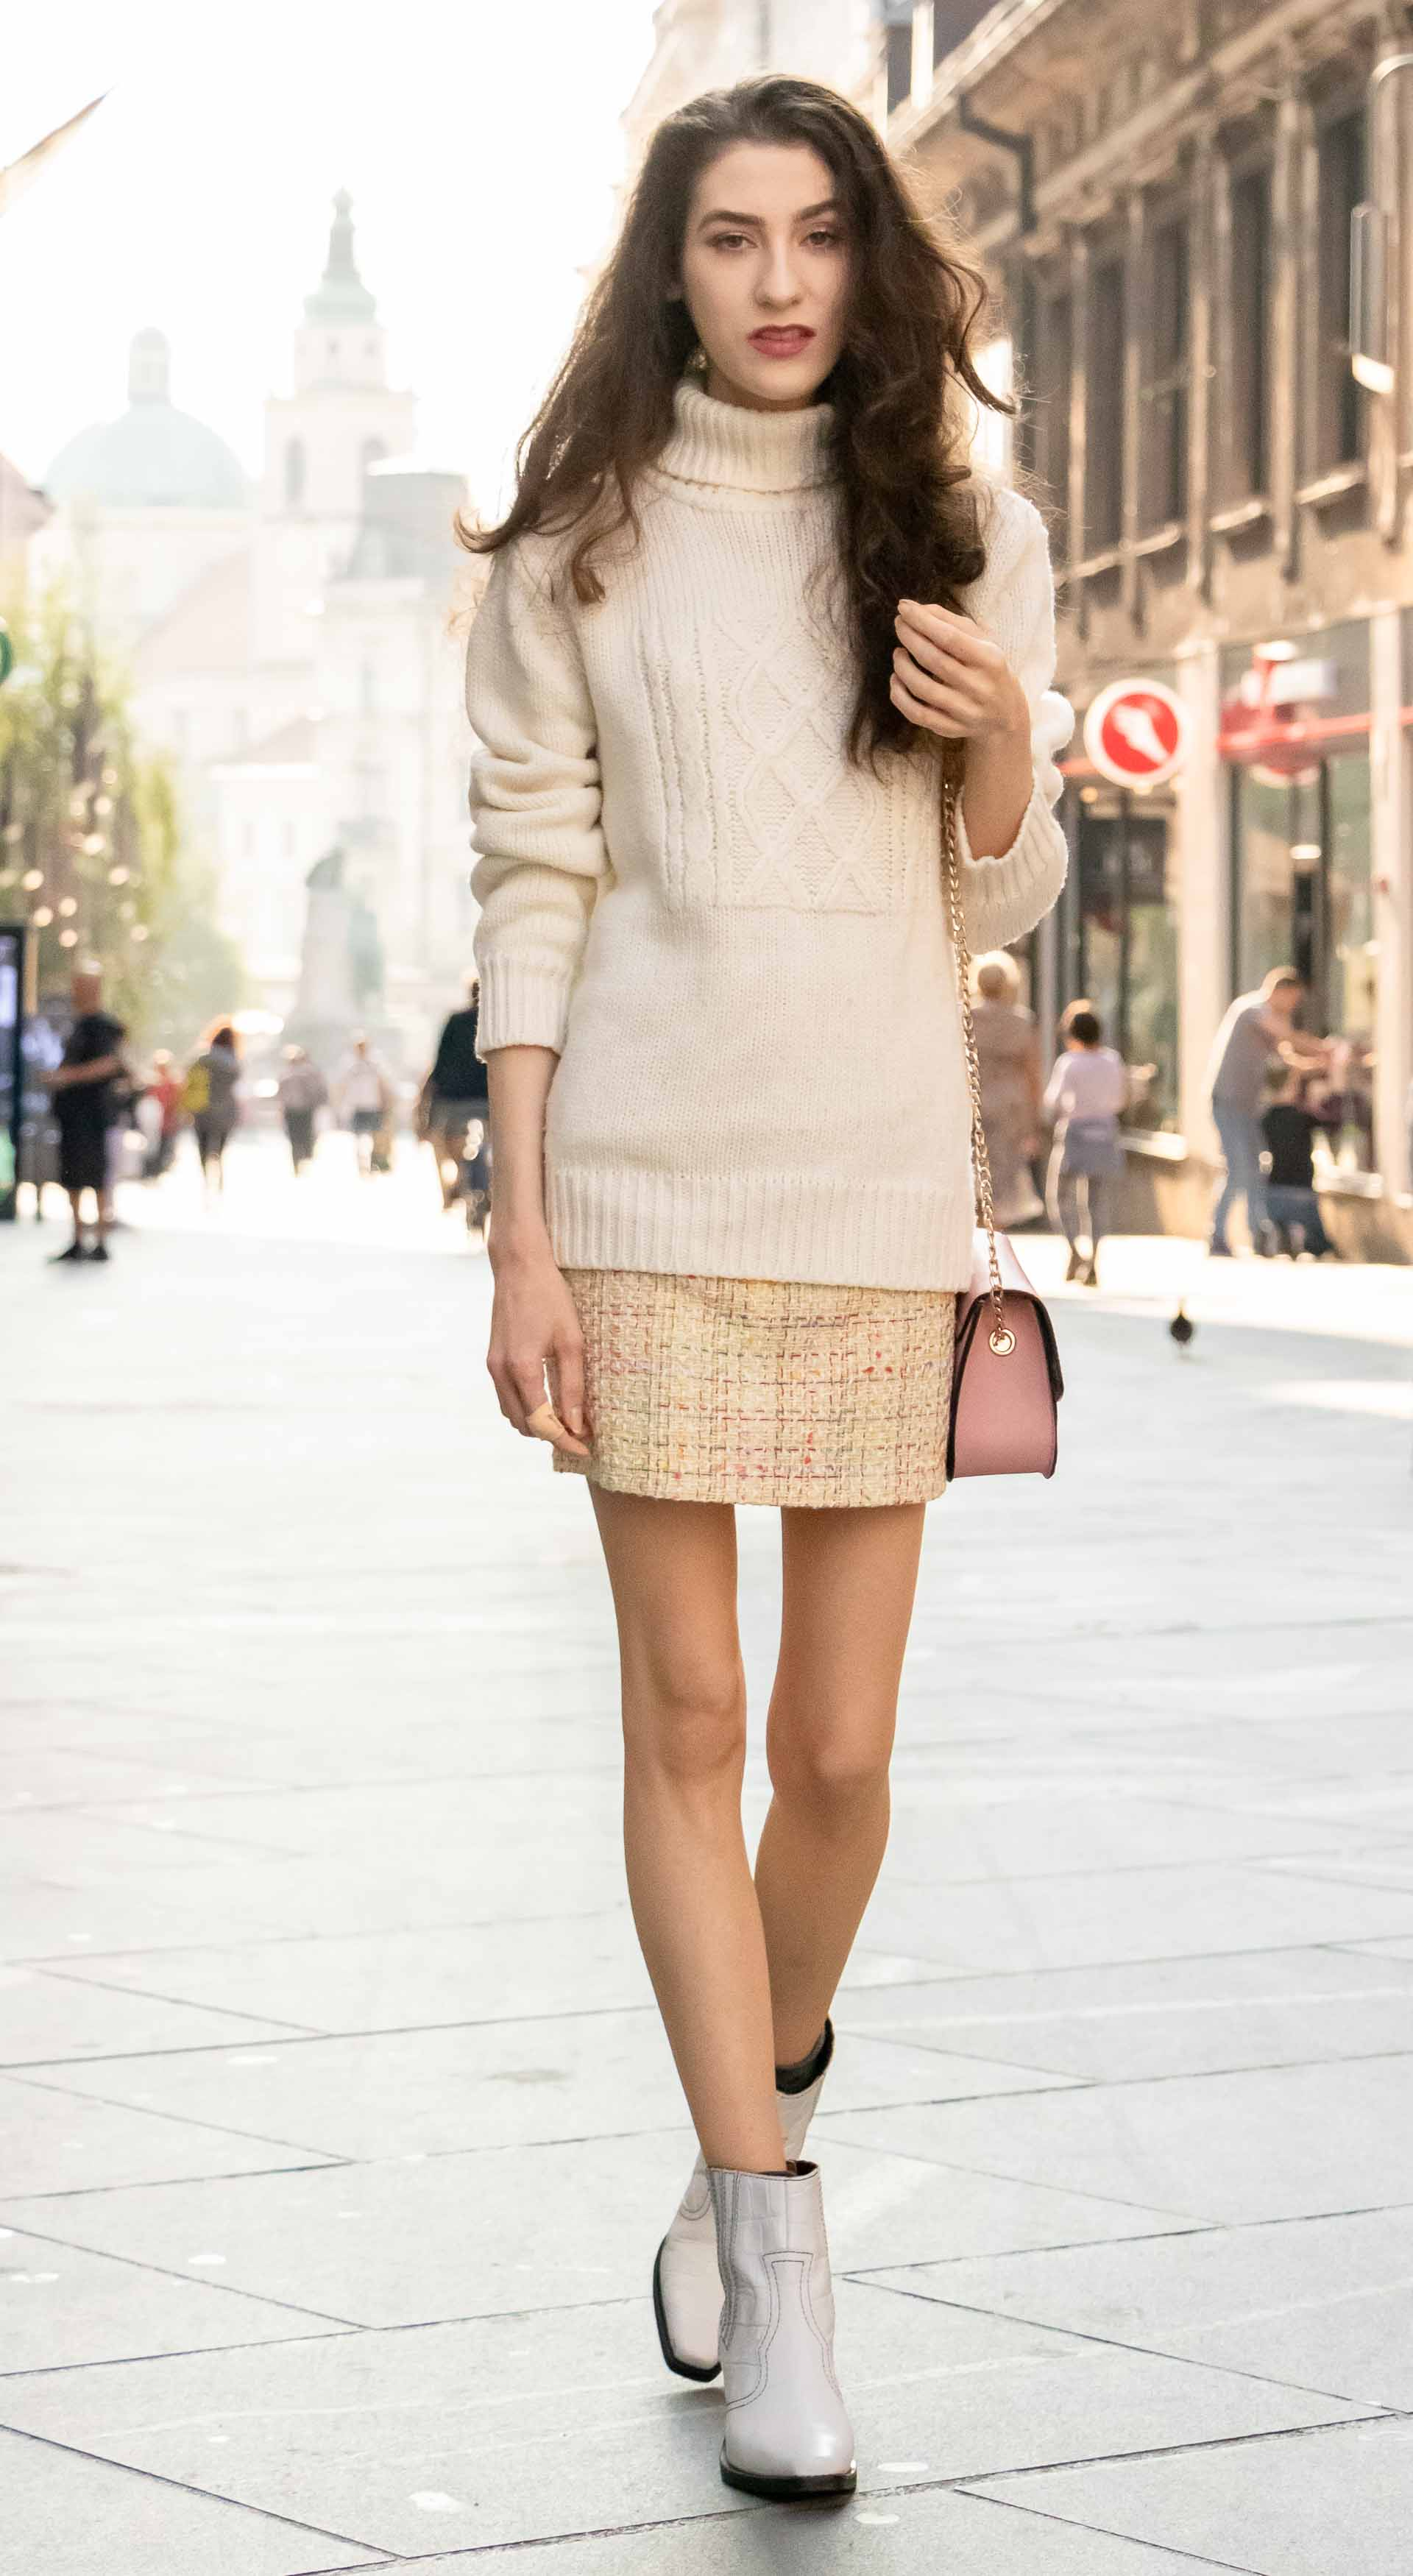 Beautiful Slovenian Fashion Blogger Veronika Lipar of Brunette from Wall wearing white Ganni Western boots, yellow tweed skirt, white turtleneck sweater, chain strap shoulder bag walking on the street in the morning in Ljubljana in fall